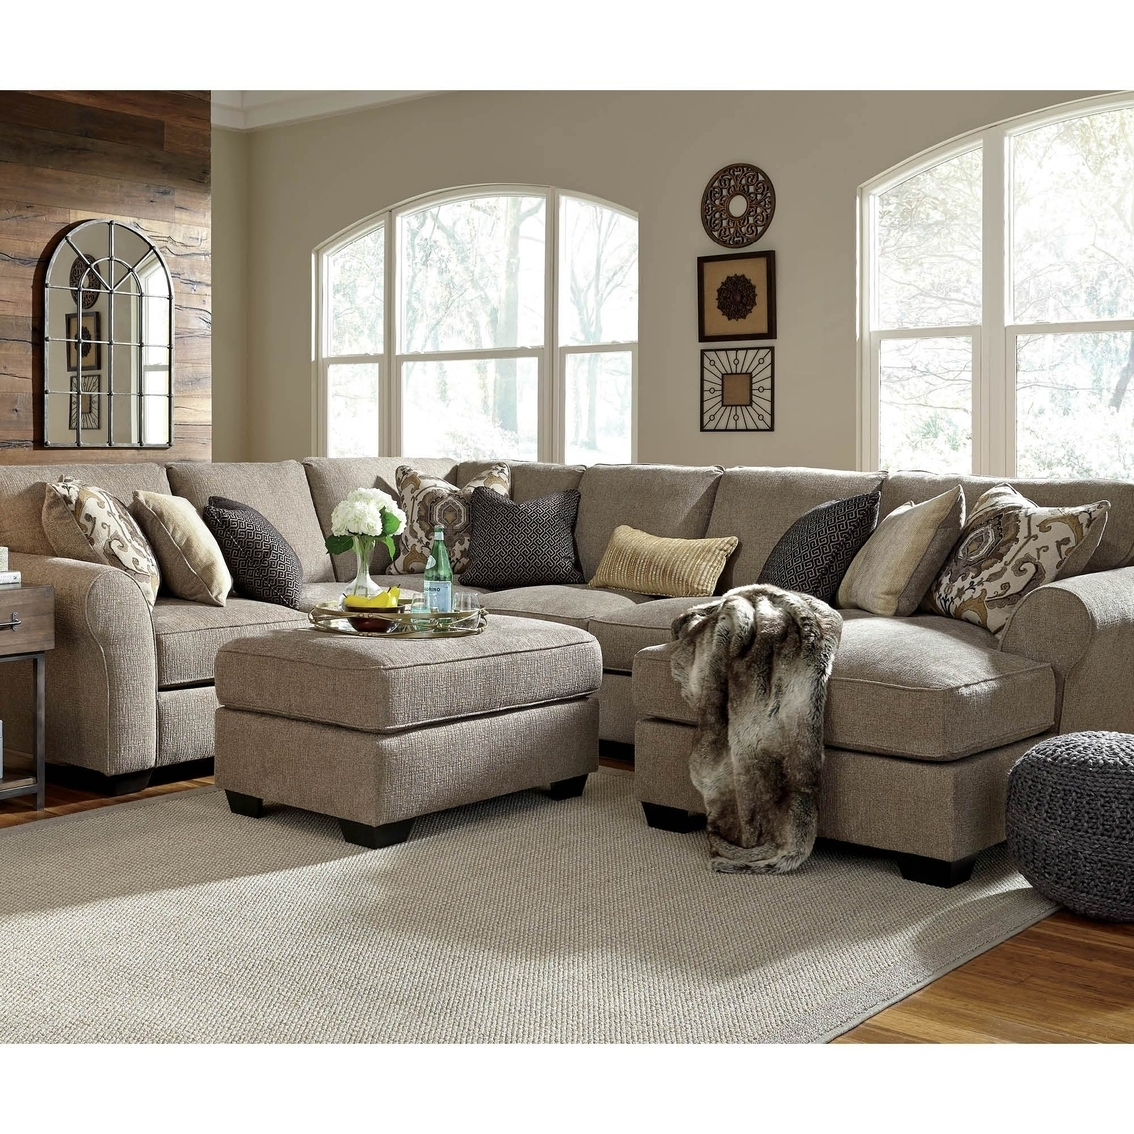 Laf Sofa Raf Loveseat | Baci Living Room Within Turdur 2 Piece Sectionals With Laf Loveseat (Image 13 of 25)